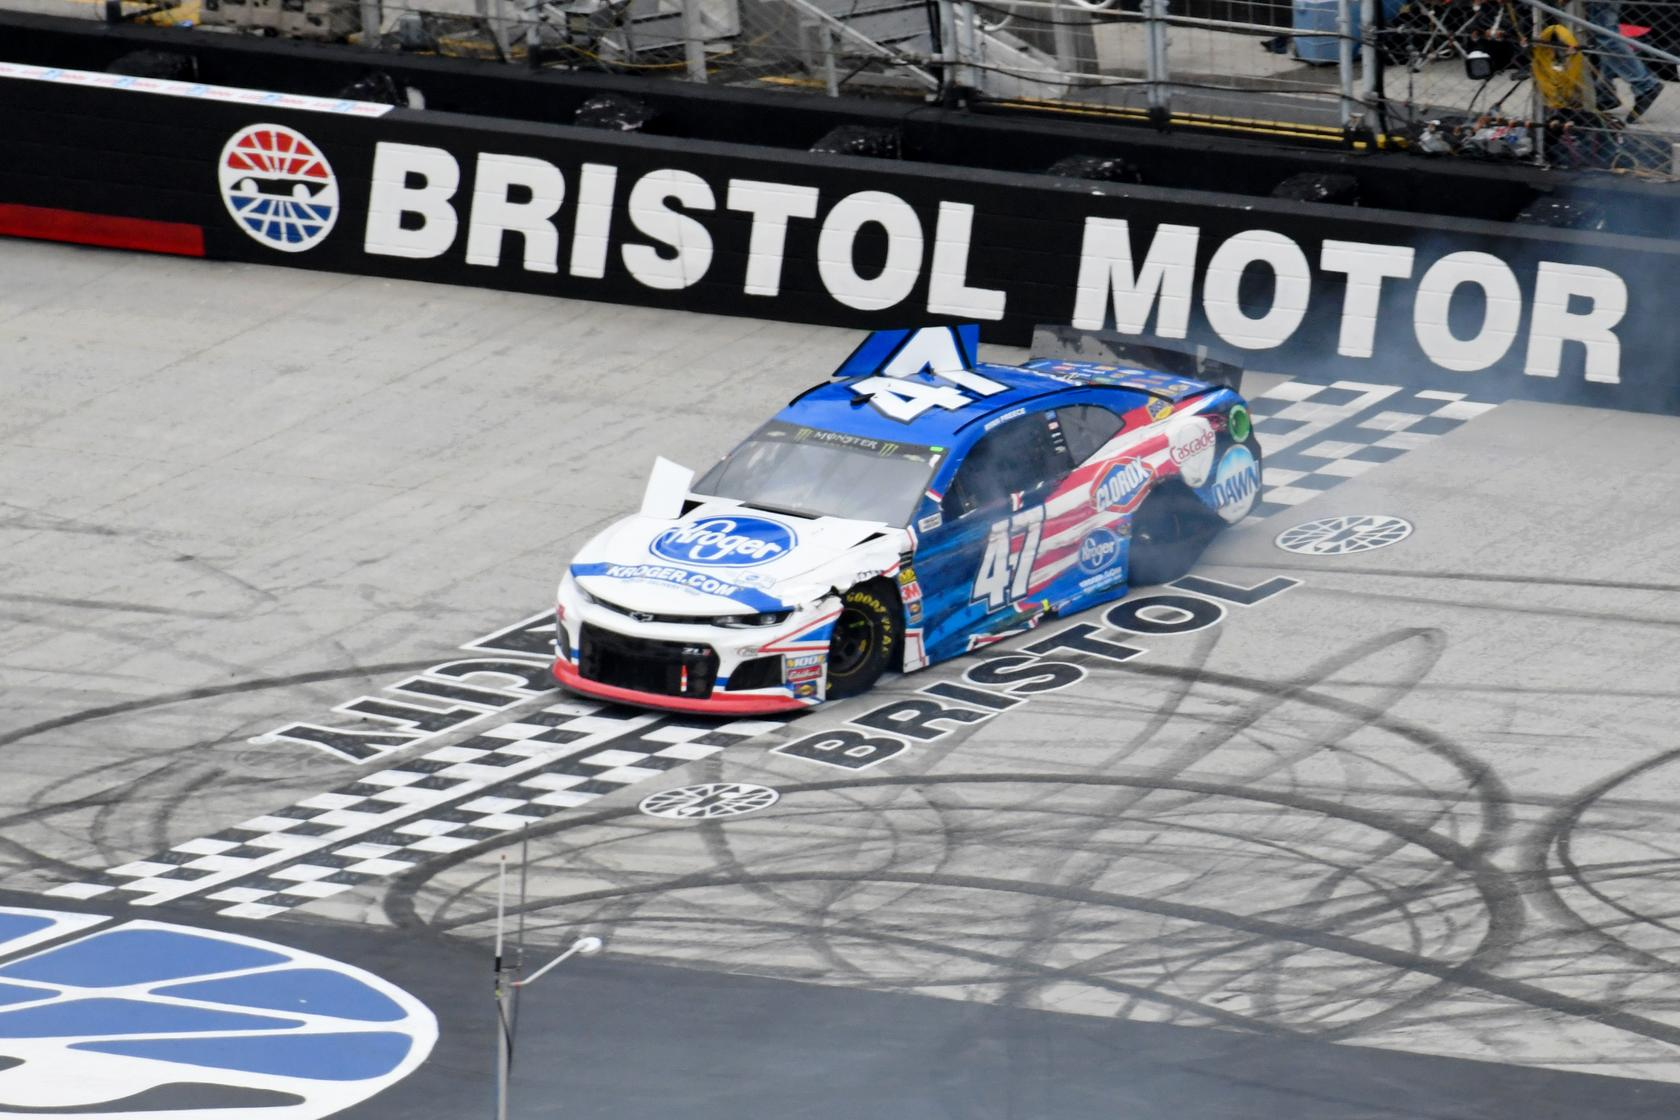 ... TN, USA; Monster Energy NASCAR Cup Series driver Ryan Preece (47) crashes during the NASCAR Monster Energy Food City 500 at Bristol Motor Speedway.